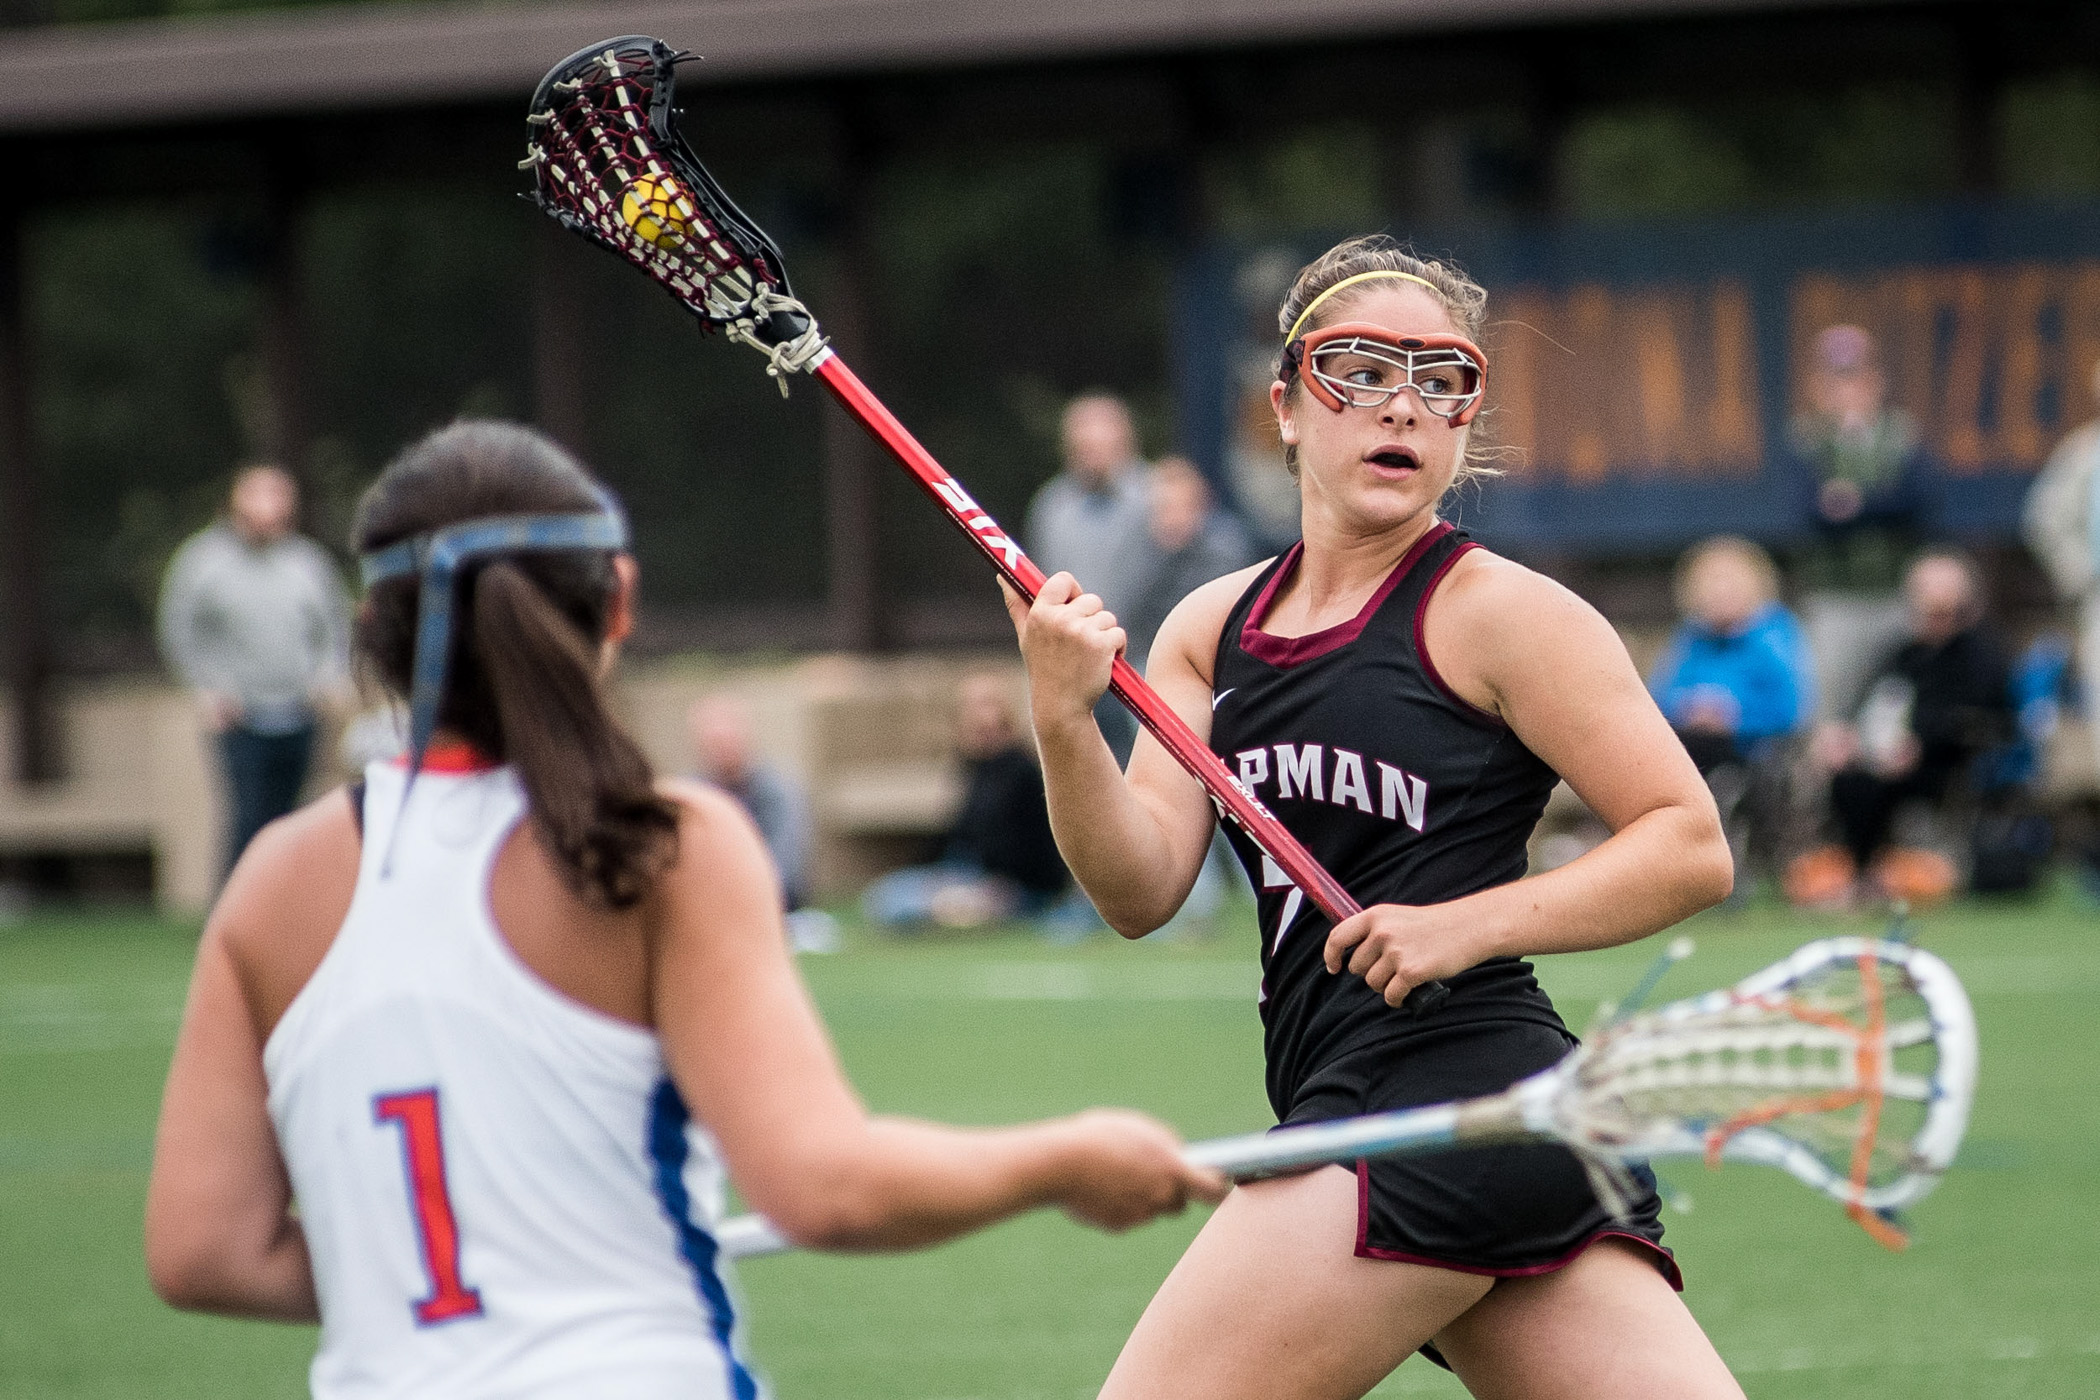 Chapman University's Kelsey Mackin brings the ball up the field against Pomona-Pitzer's Katie Savino during the second round of the Division III NCAA women's lacrosse tournament in Claremont, Calif.,on Sunday, May 15, 2016. (Michael Ares, Contributing Photographer, Orange County Register)